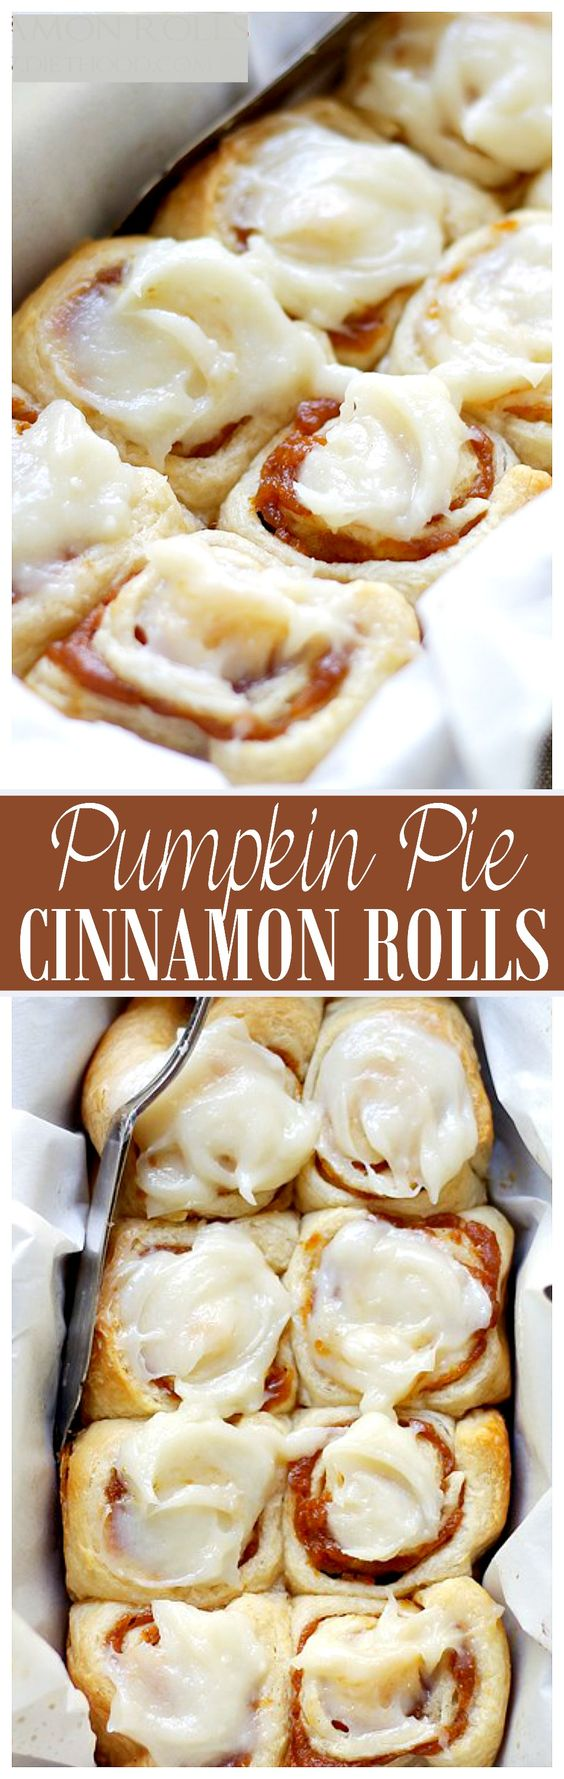 30 Minute Pumpkin Pie Cinnamon Rolls Recipe | Diethood - The BEST Cinnamon Rolls Recipes - Perfect Treats for Breakfast, Brunch, Desserts, Christmas Morning, Special Occasions and Holidays #cinnamonrolls #cinnamon #cinnamontreats #cinnamonrollsrecipes #cinnamondesserts #breakfastrolls #sweetrolls